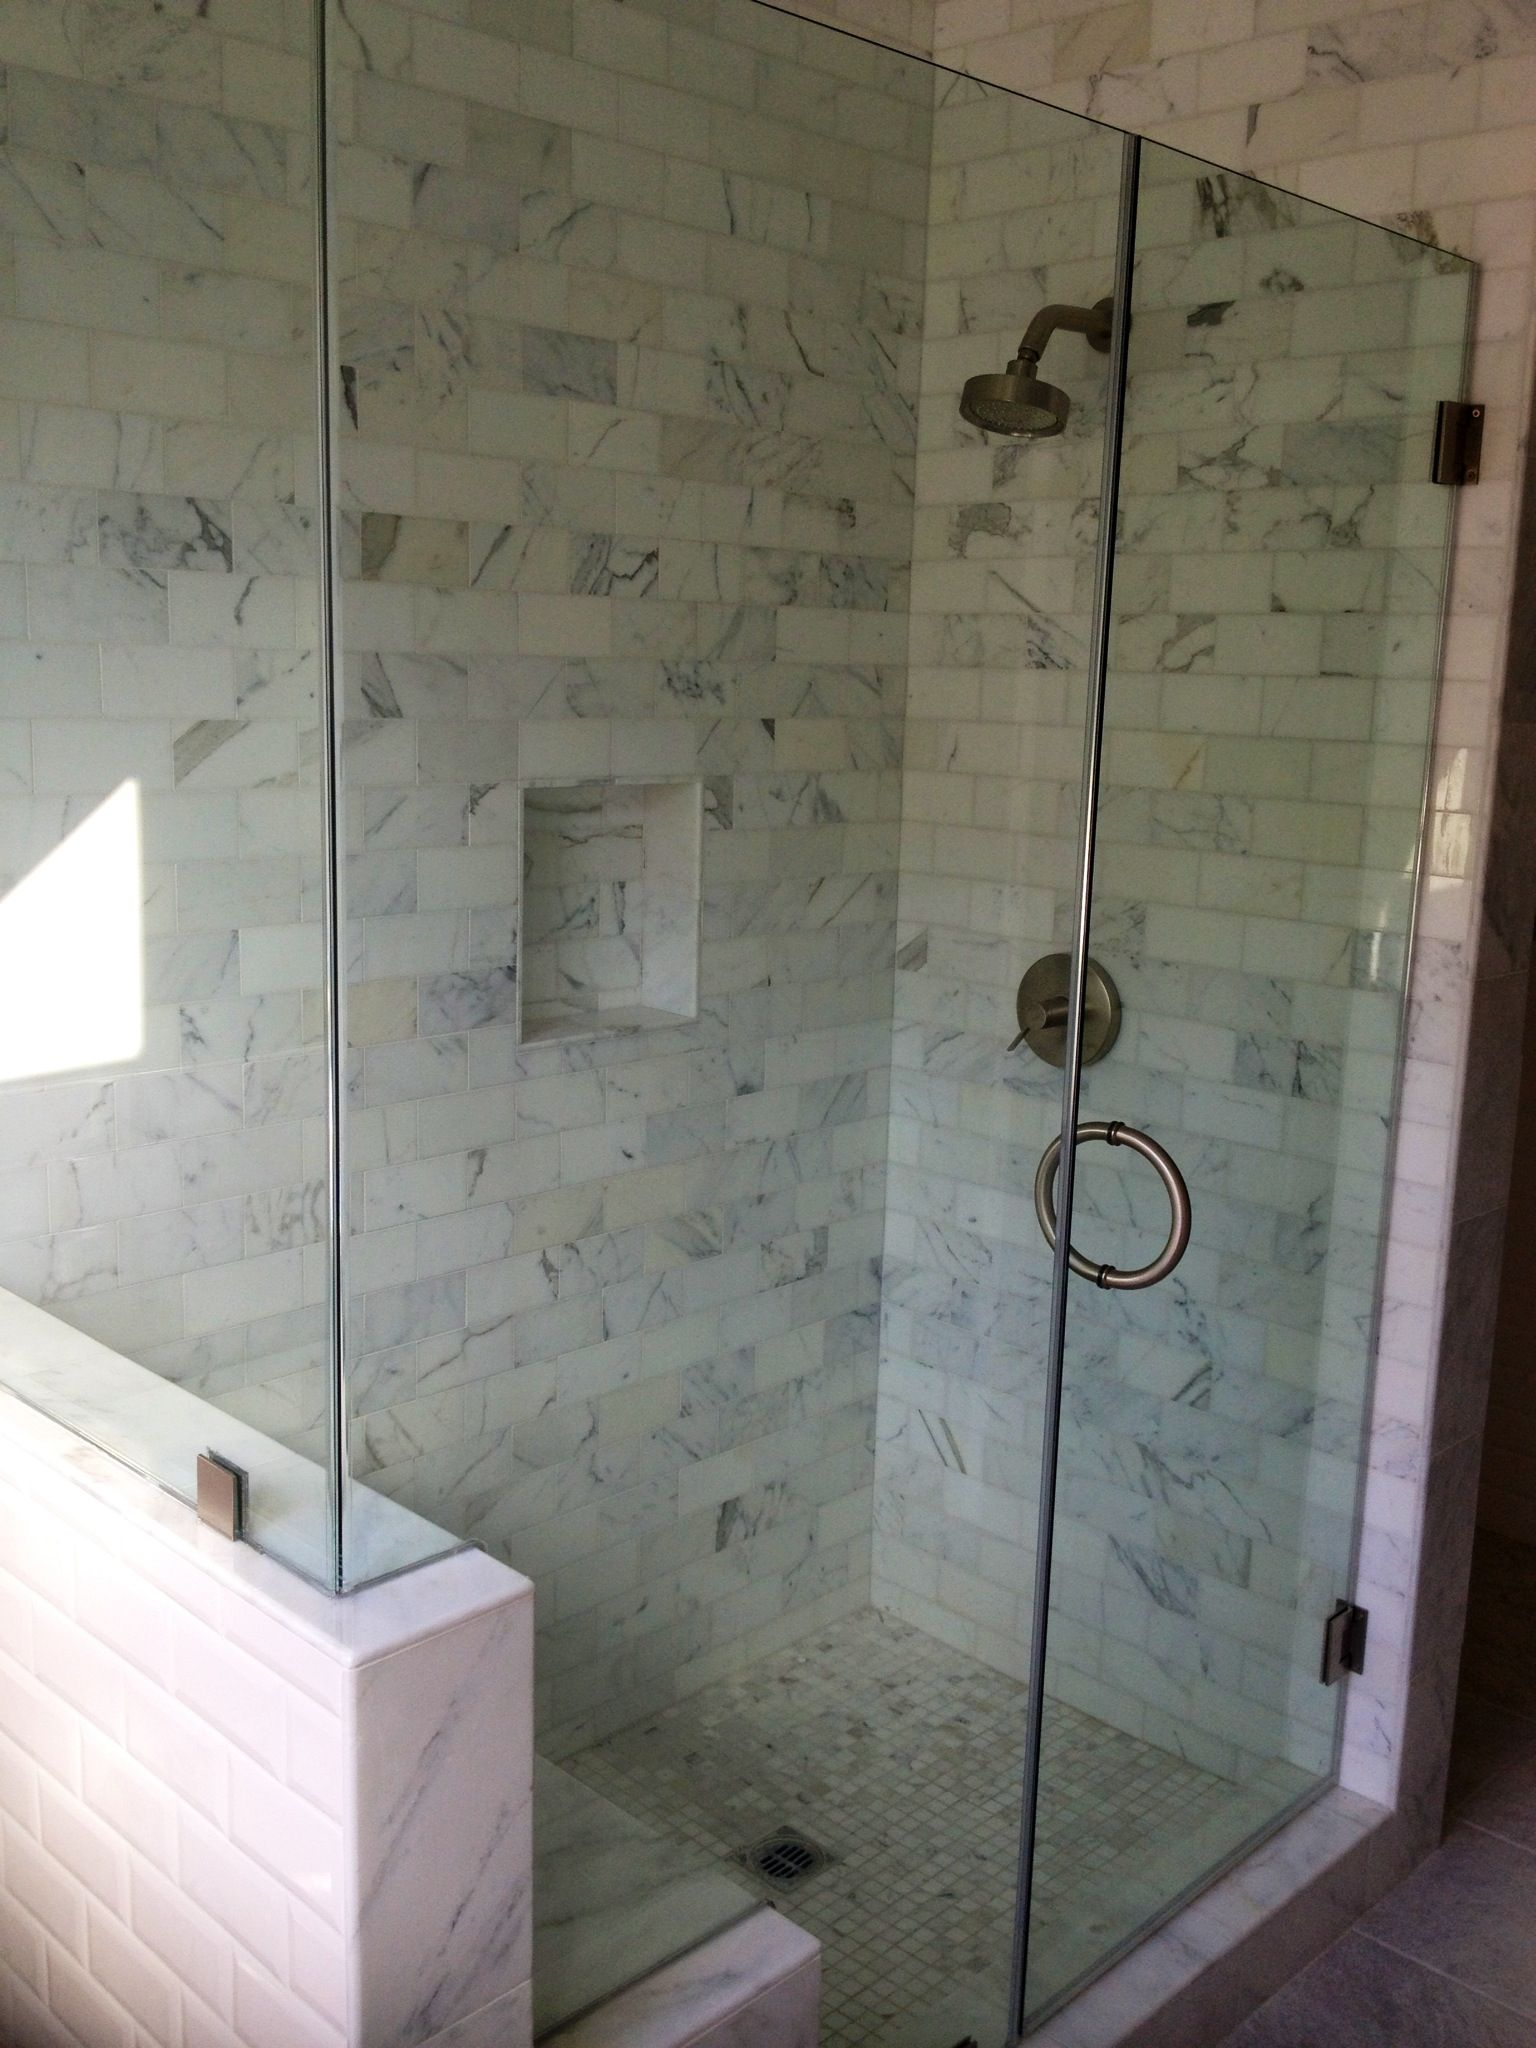 Frameless shower glass door with cut out for bench frameless frameless shower glass door with cut out for bench eventelaan Images